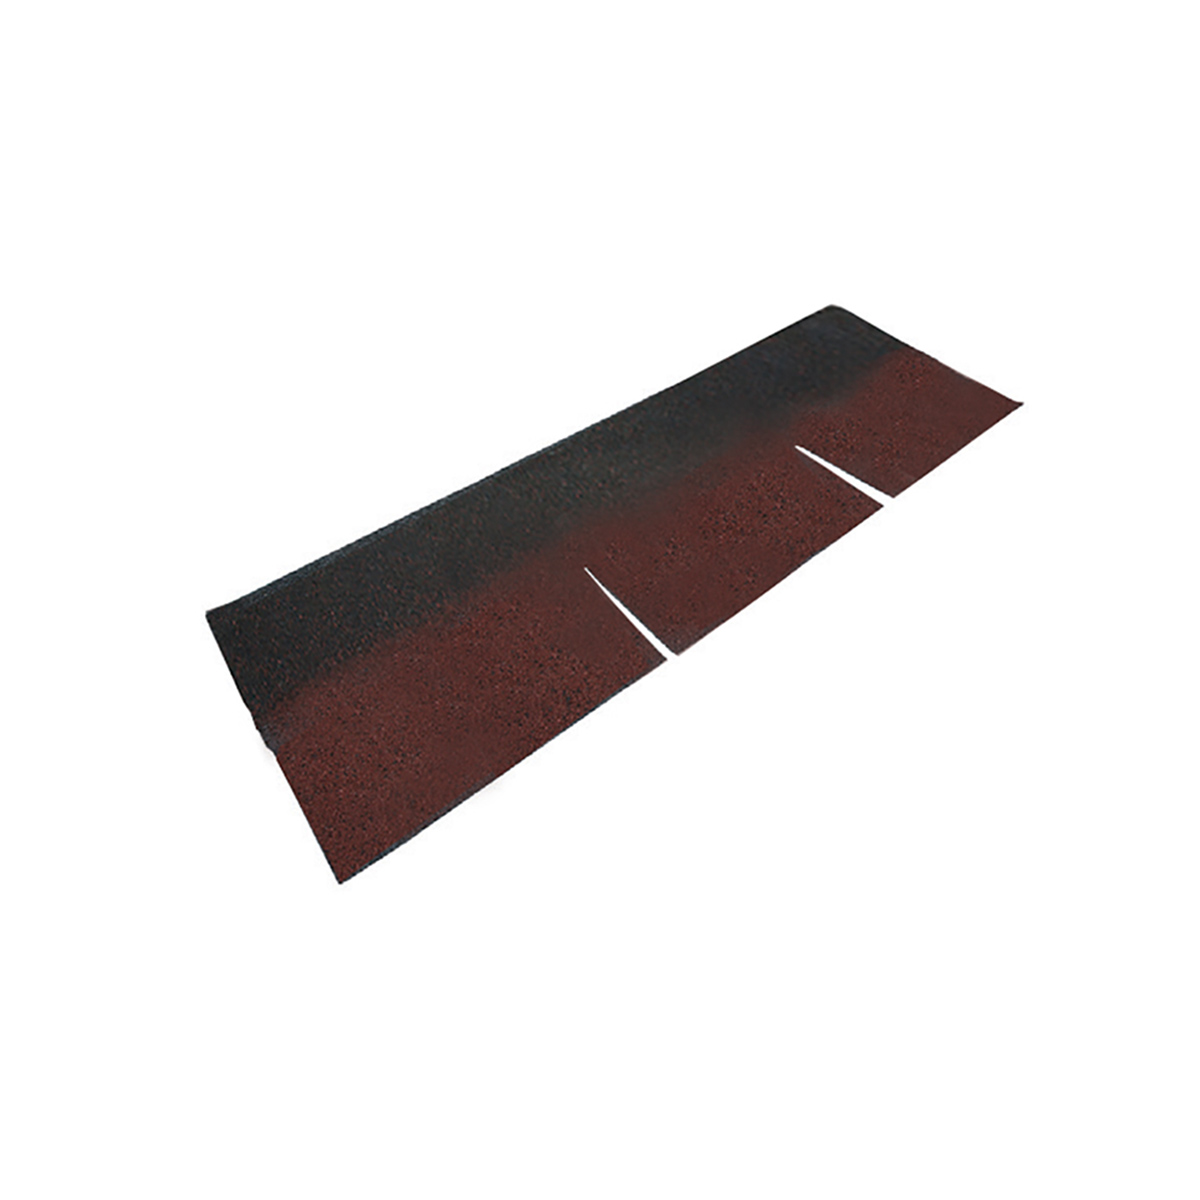 RECTANGULAR BITUMEN SHINGLES